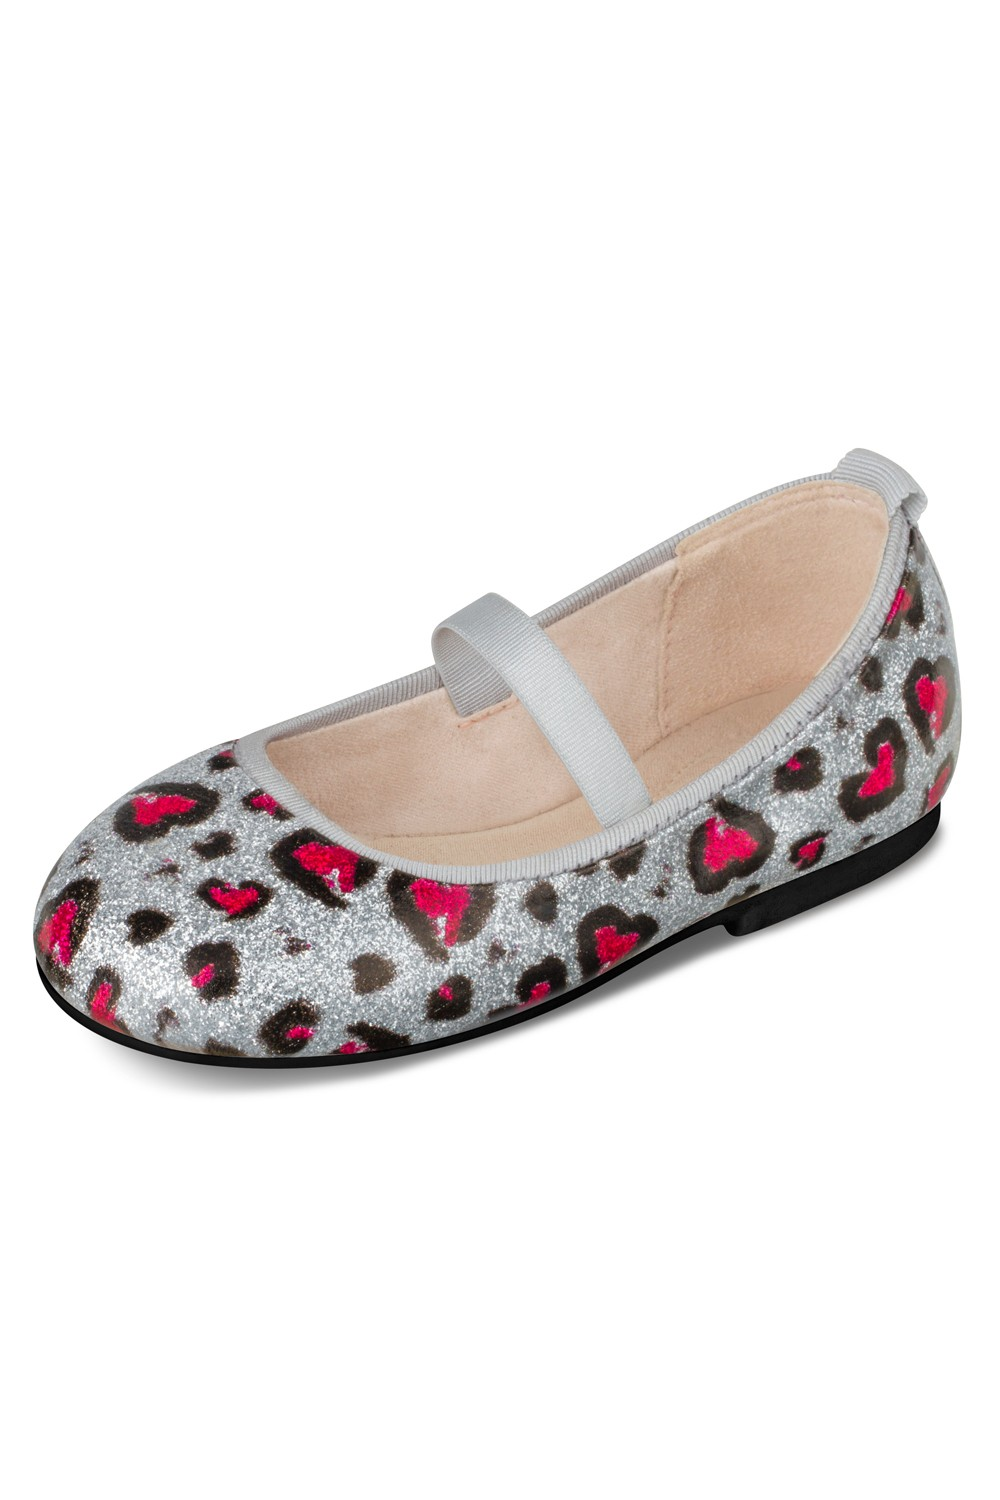 Audrey Toddlers Fashion Shoes